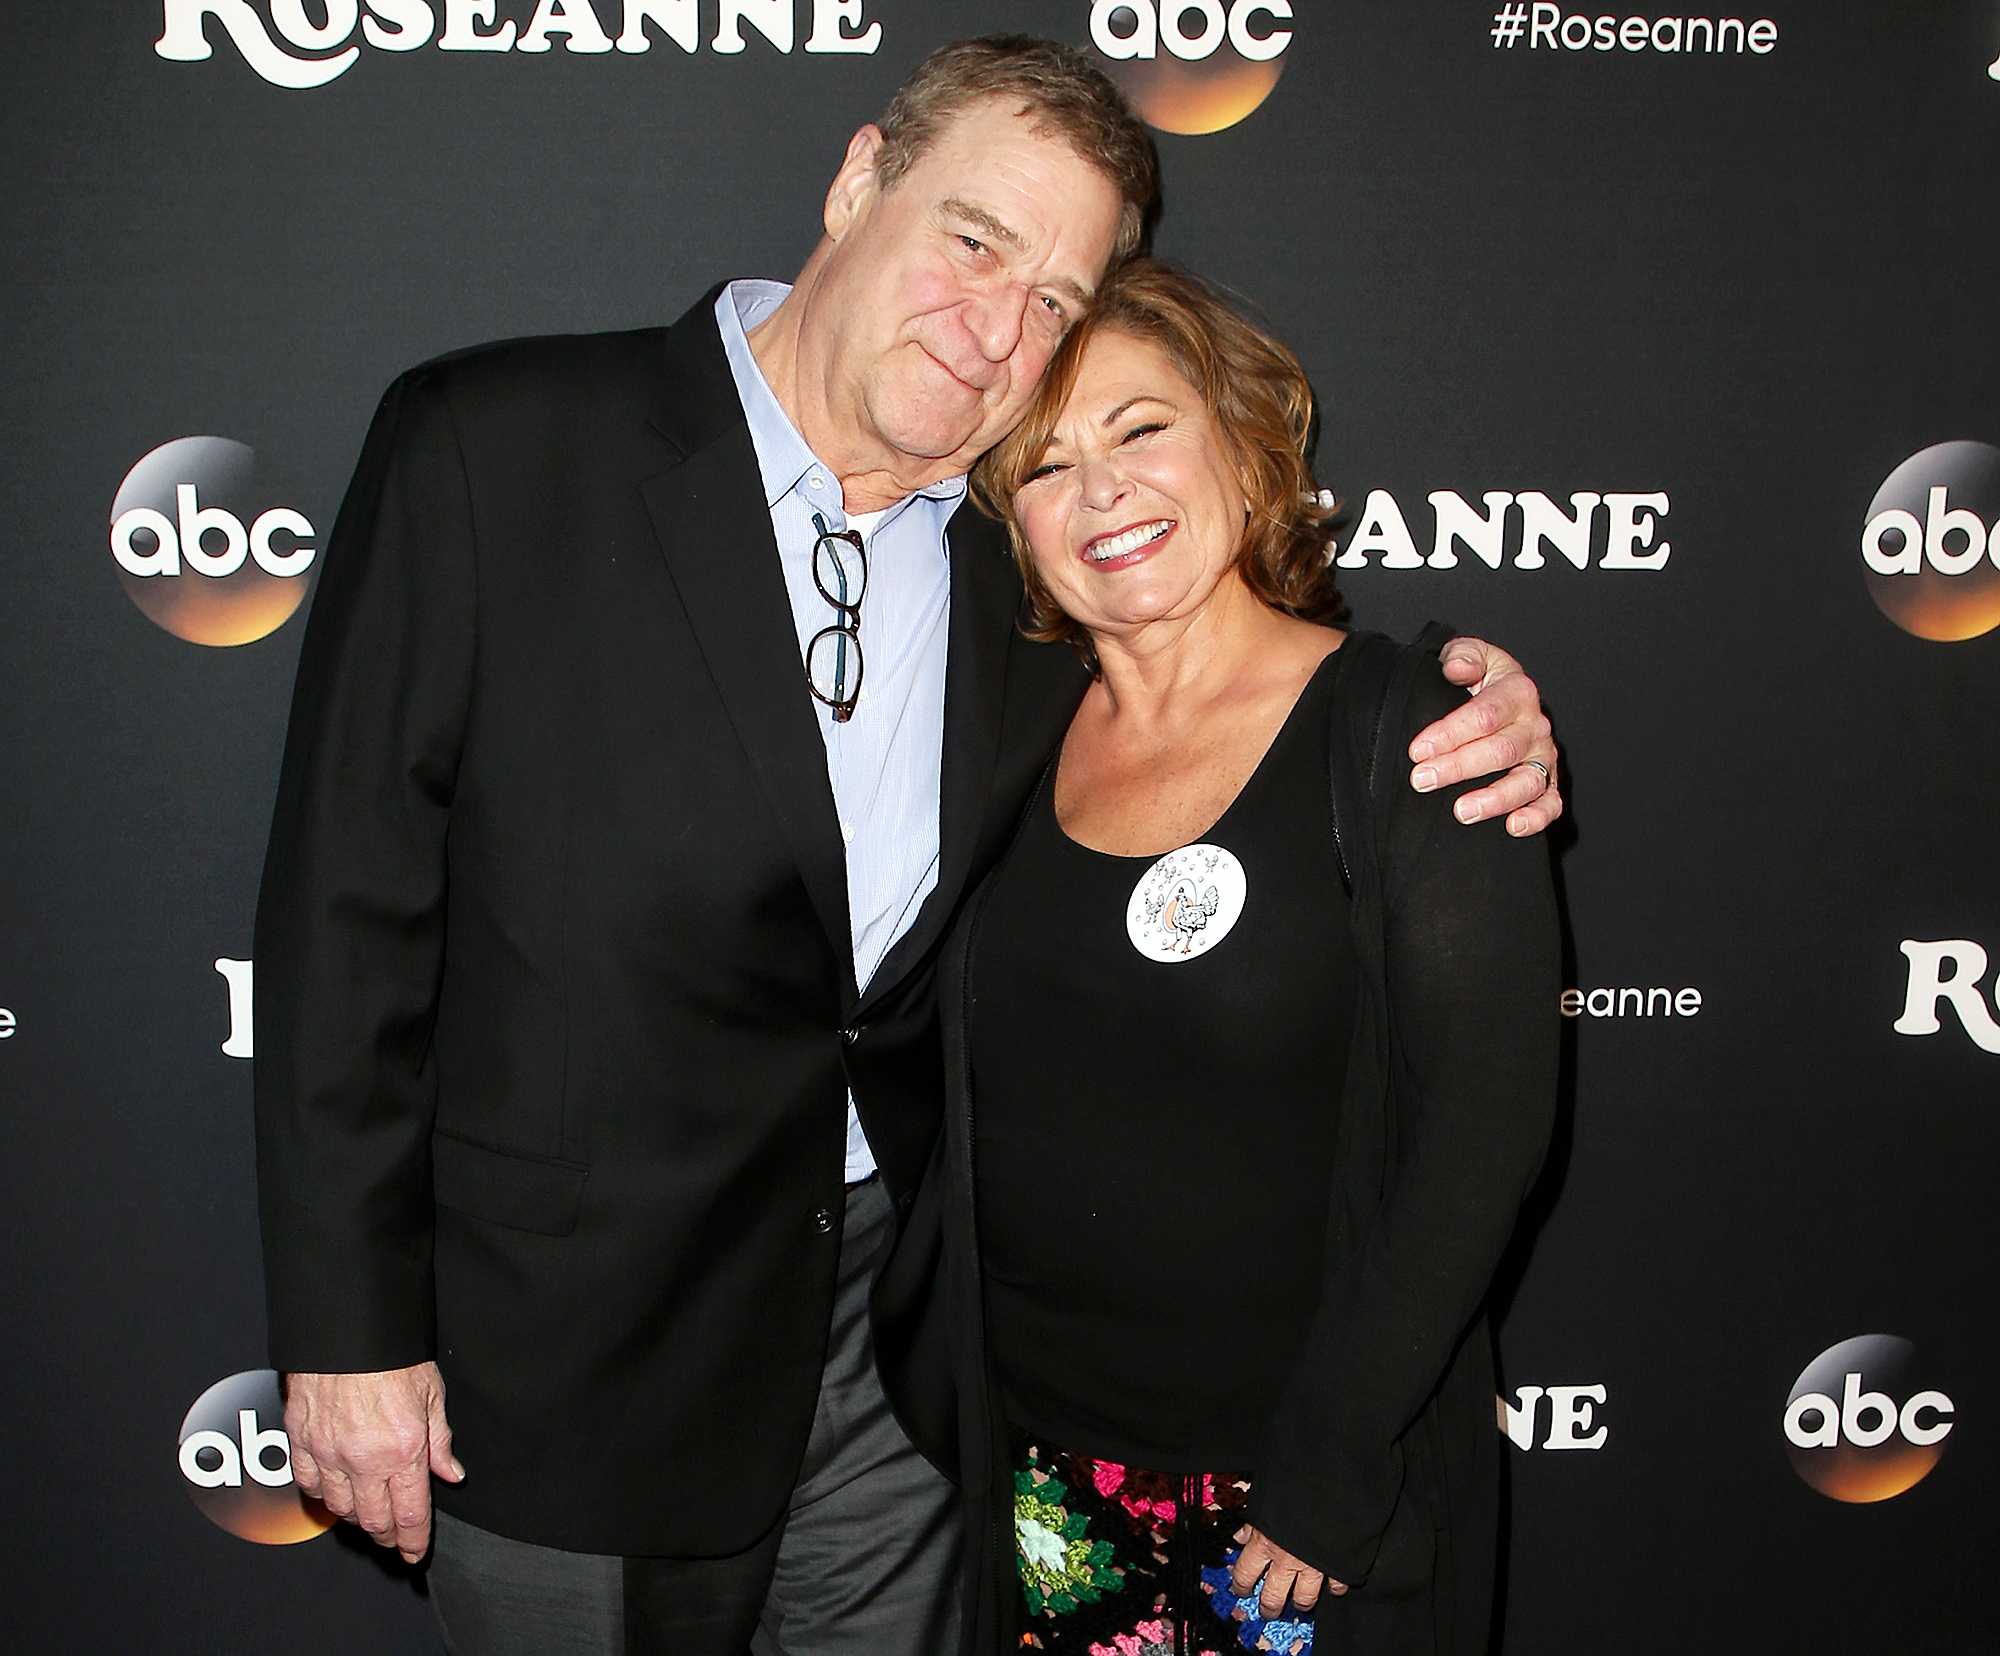 John Goodman Roseanne Cancellation Reaction